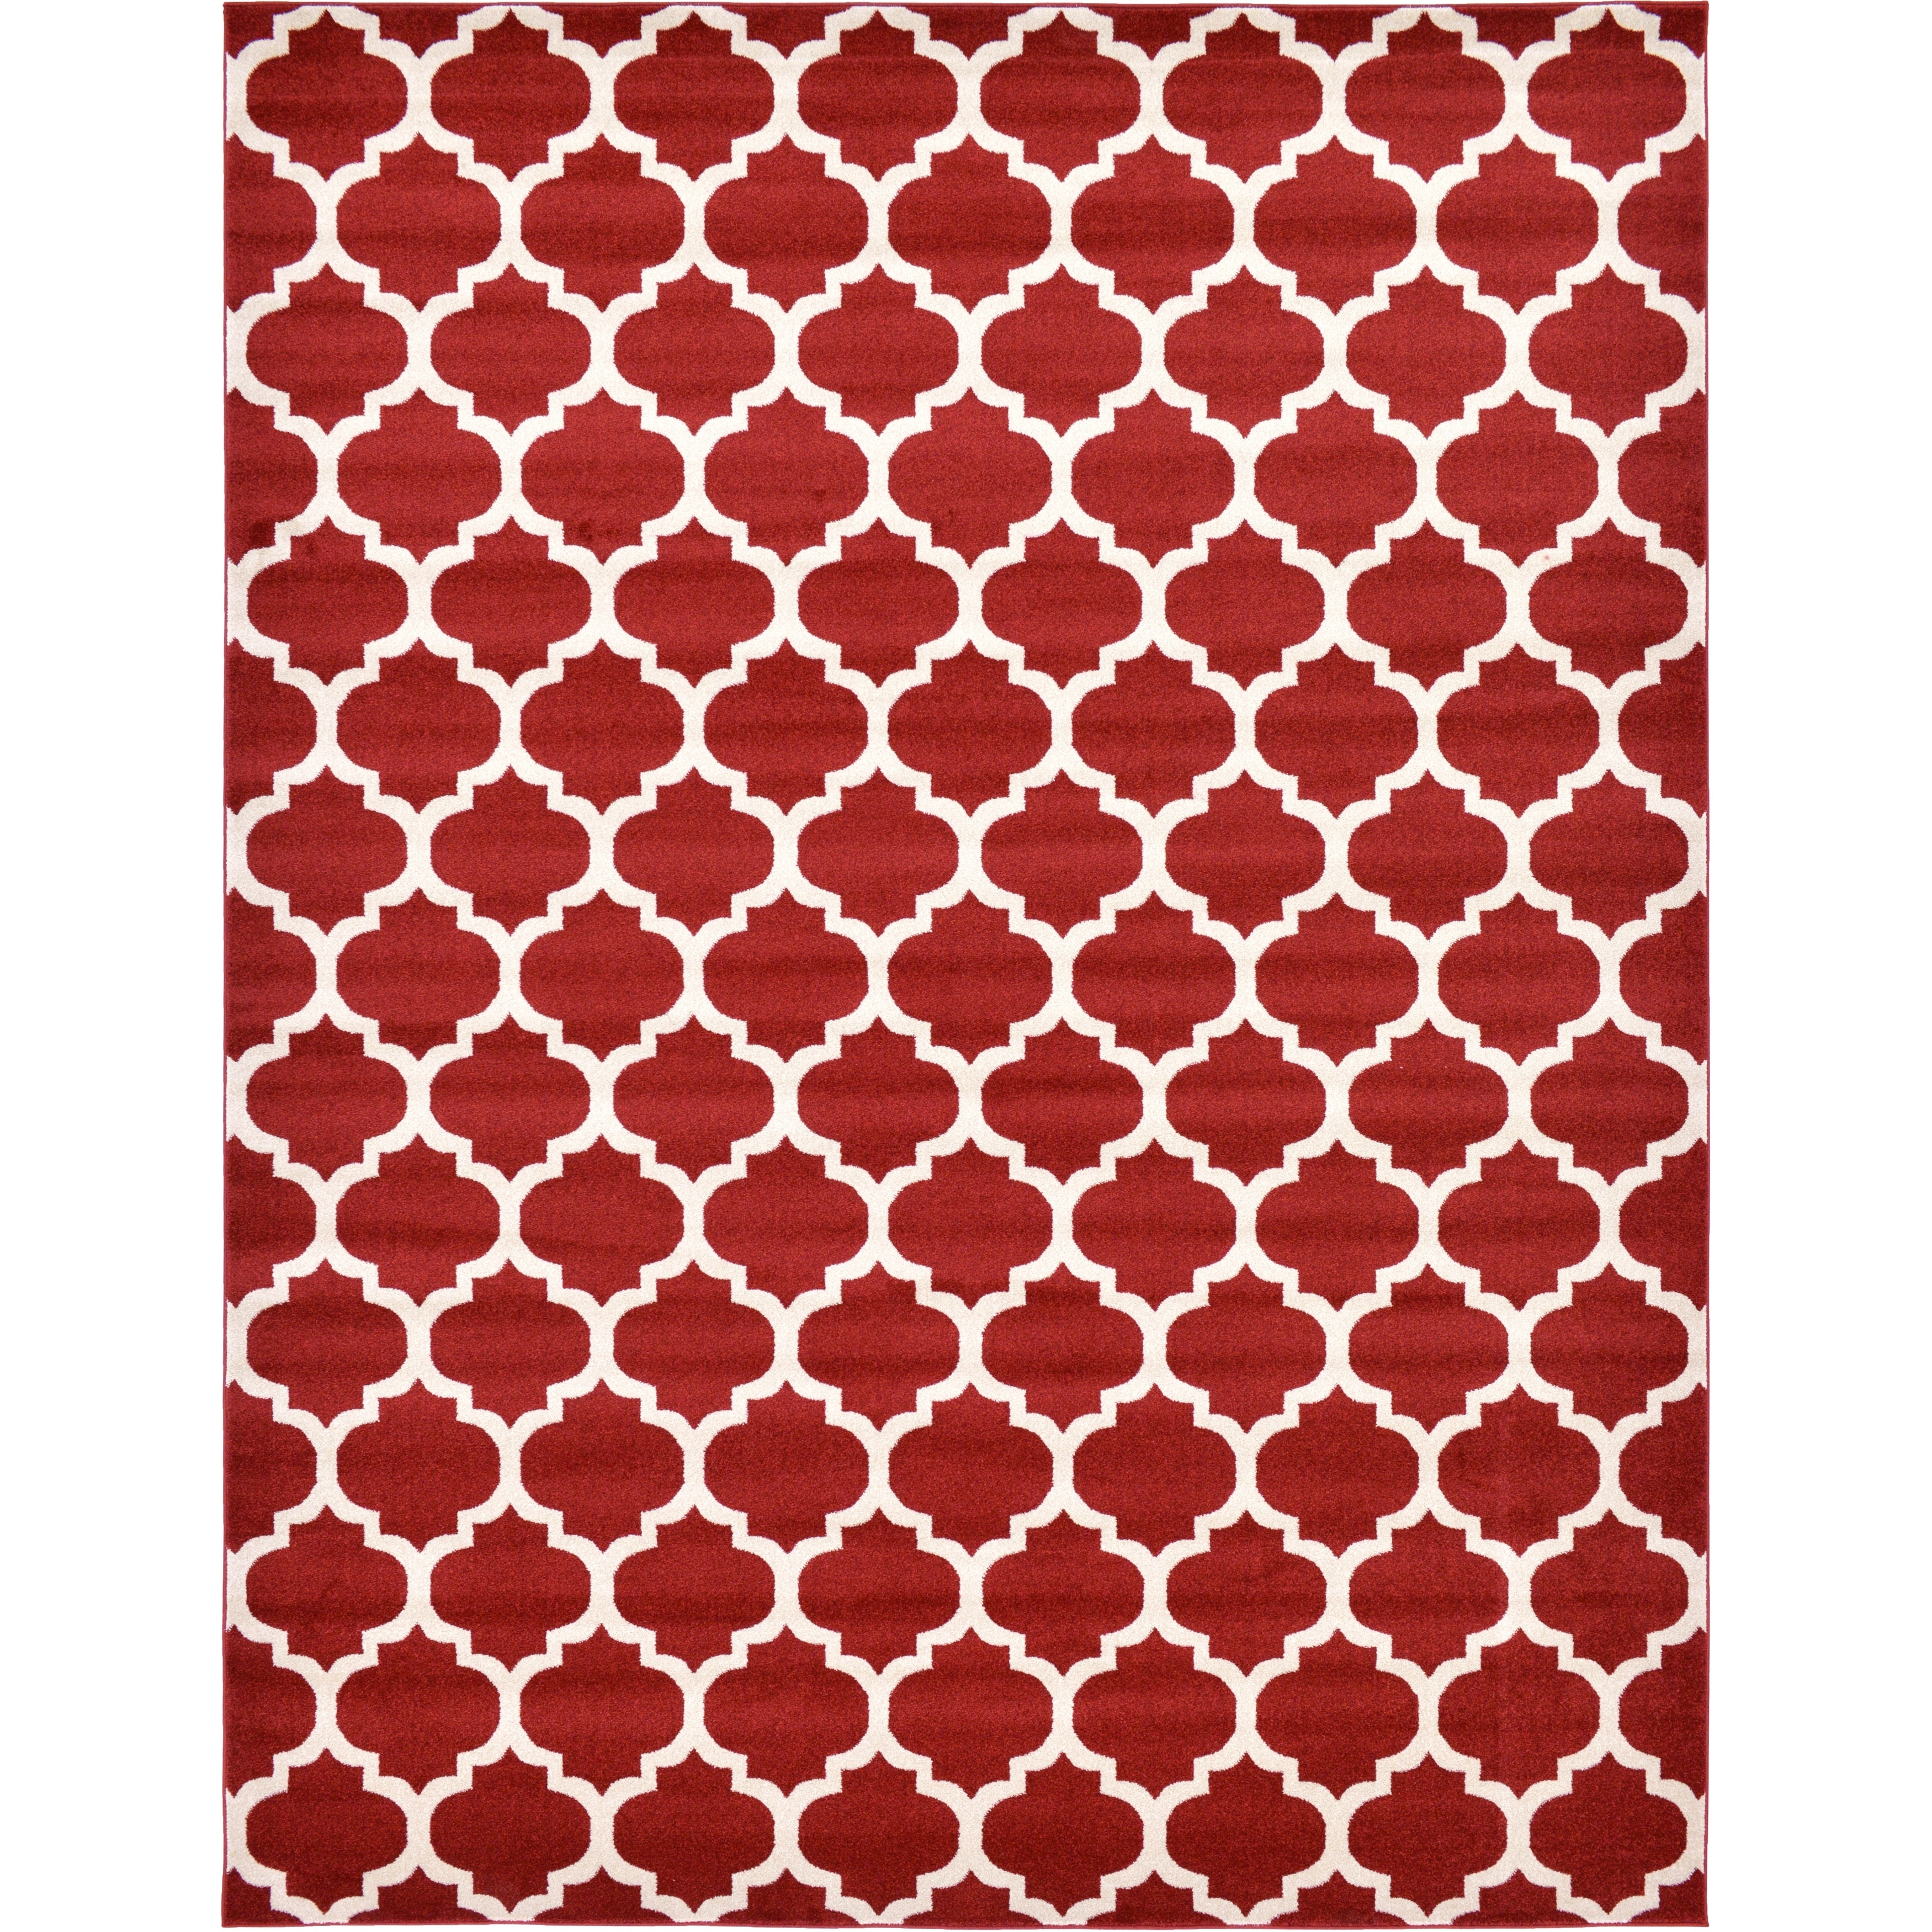 Red Modern Contemporary Area Rugs Online At Our Best Deals